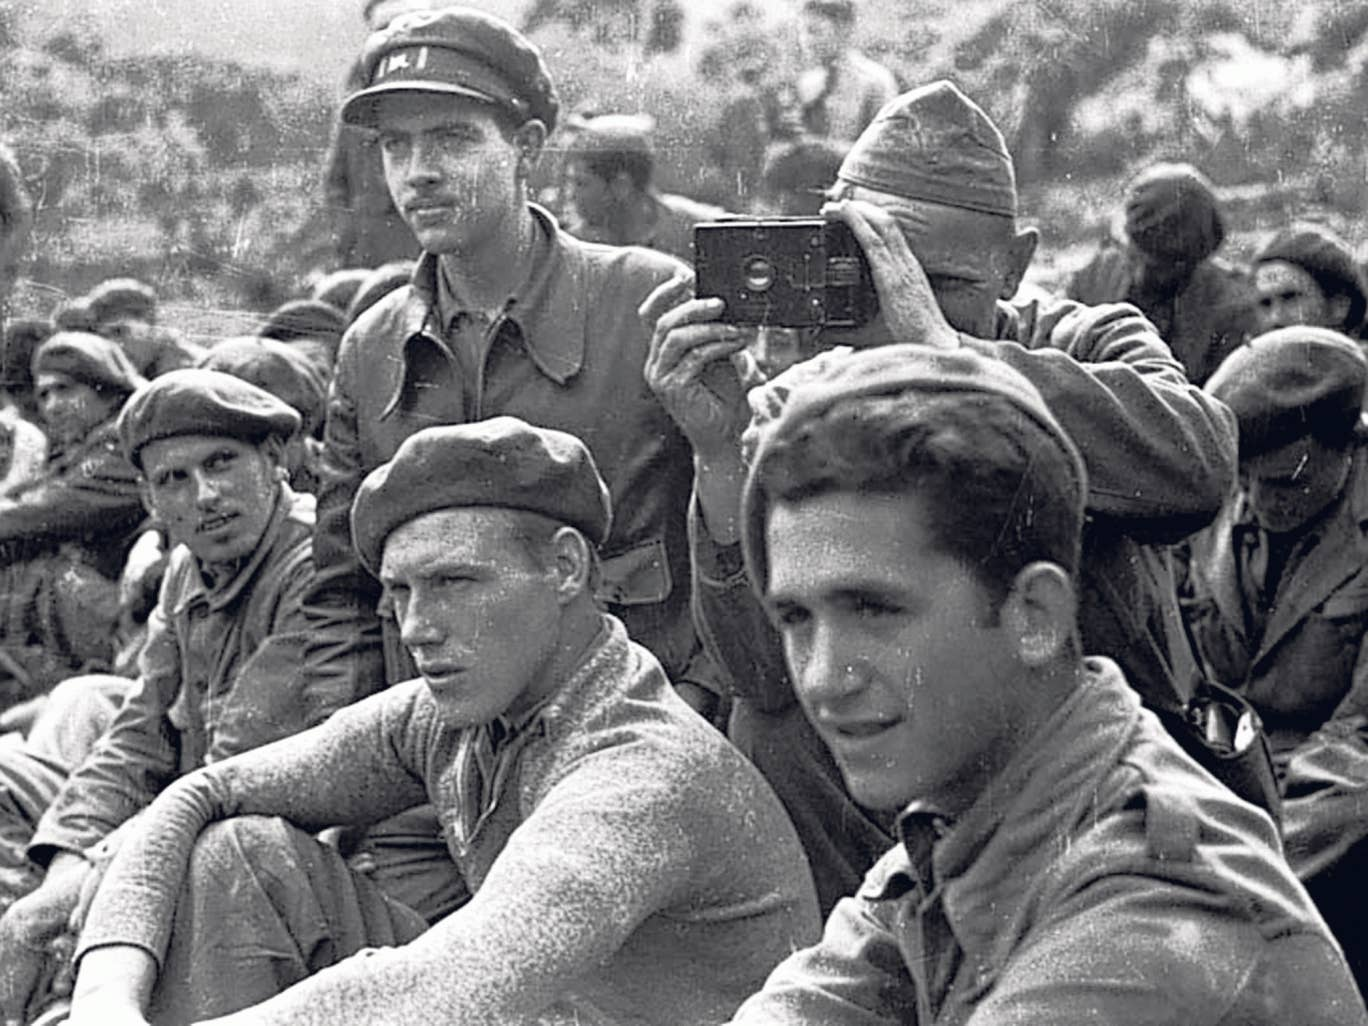 Randall, standing, left: 'We found ourselves acting as runners, ammunition carriers, guards, observers,' he said of his photographic unit